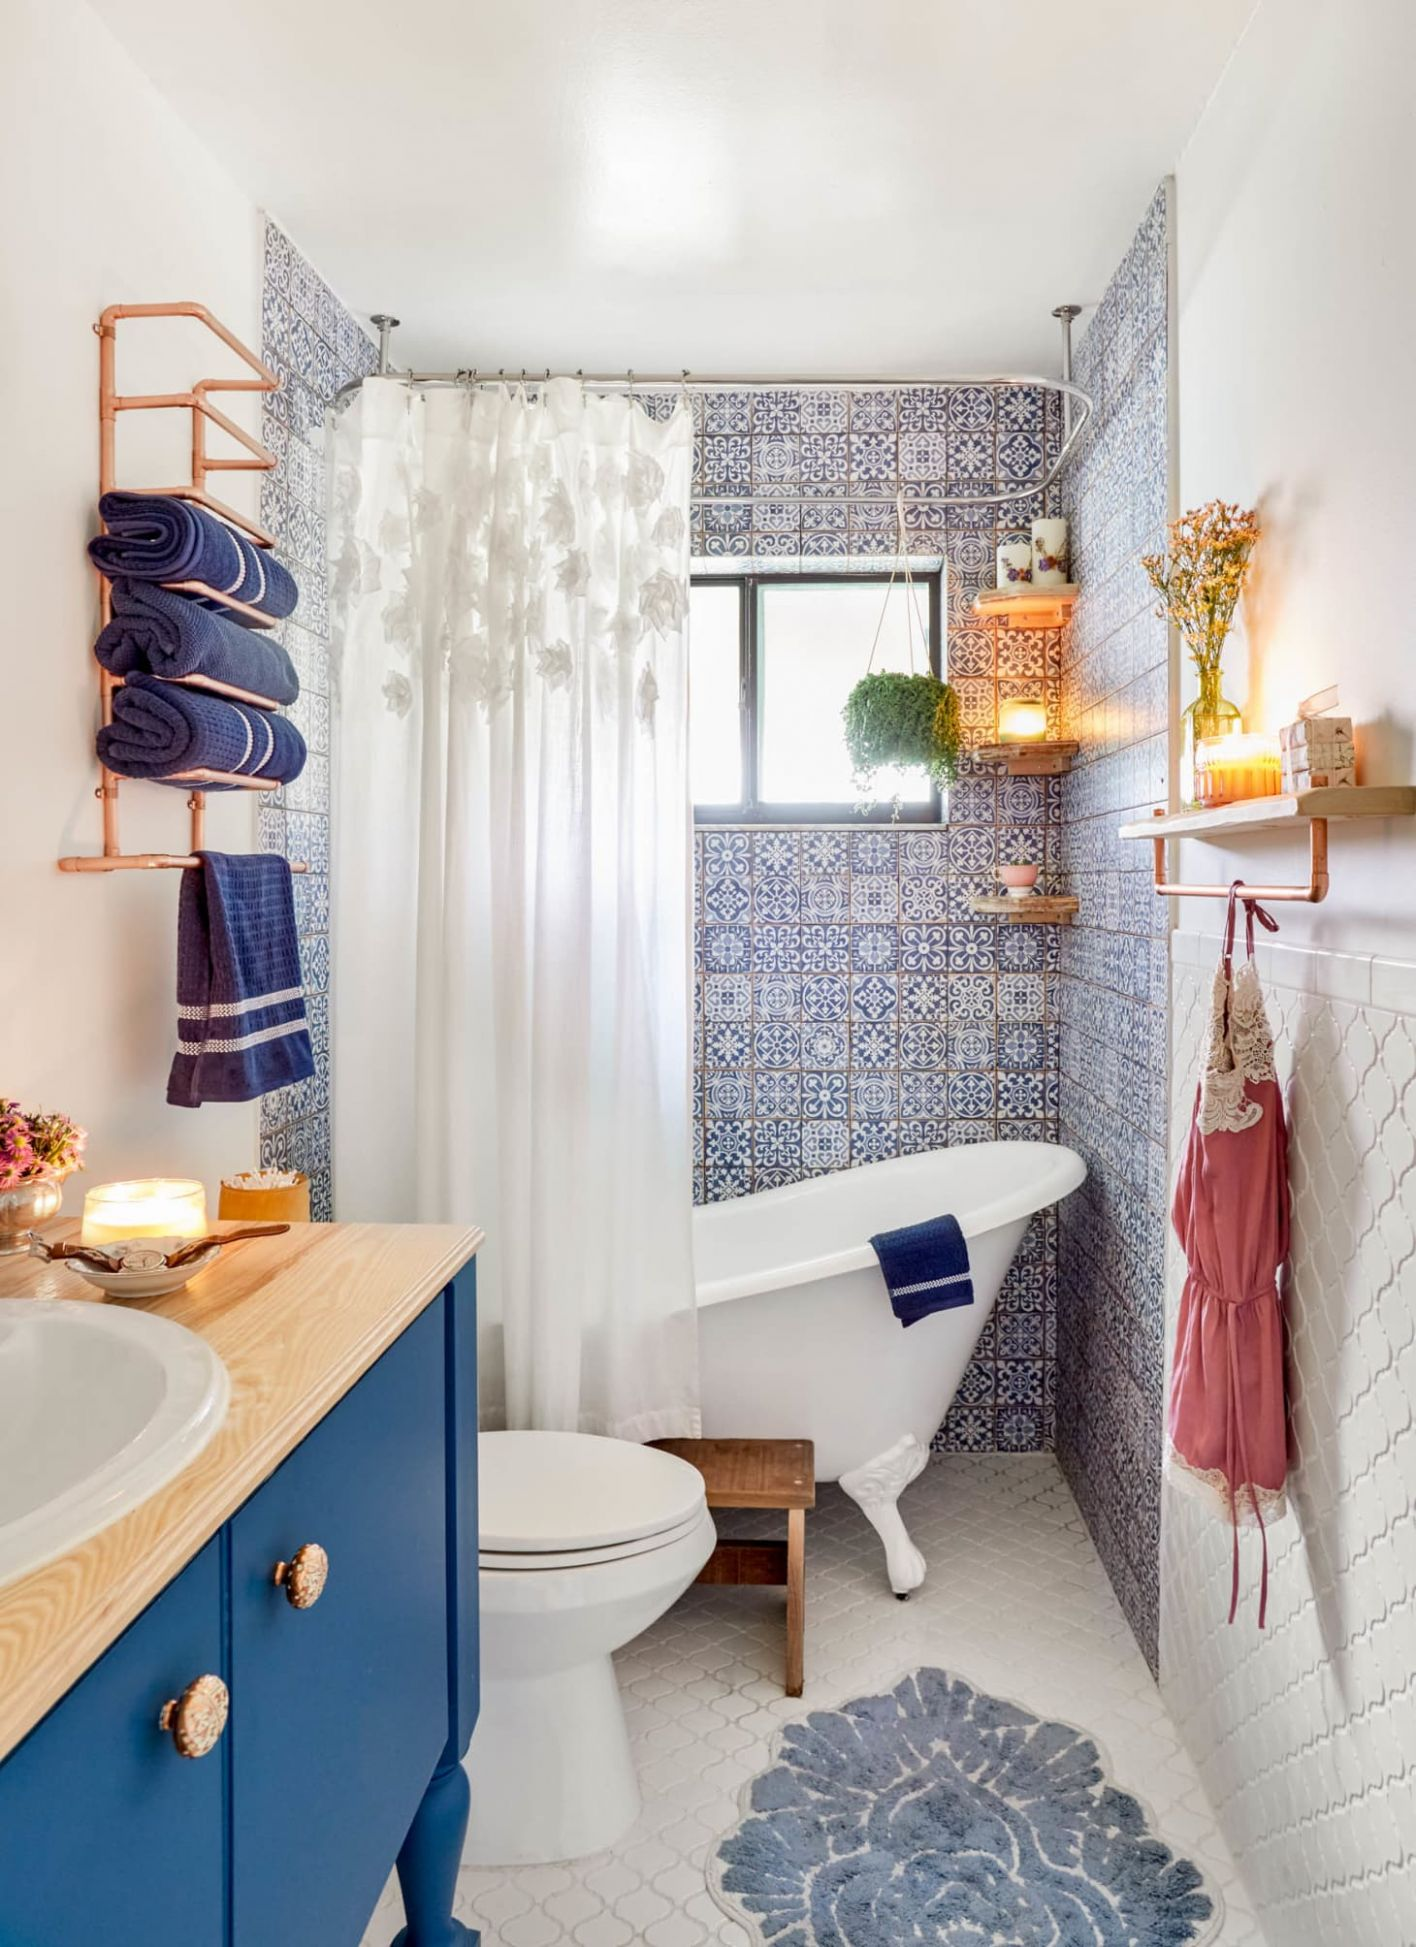 9 Best Small Bathroom Decorating Ideas - Tiny Bathroom Layout ..